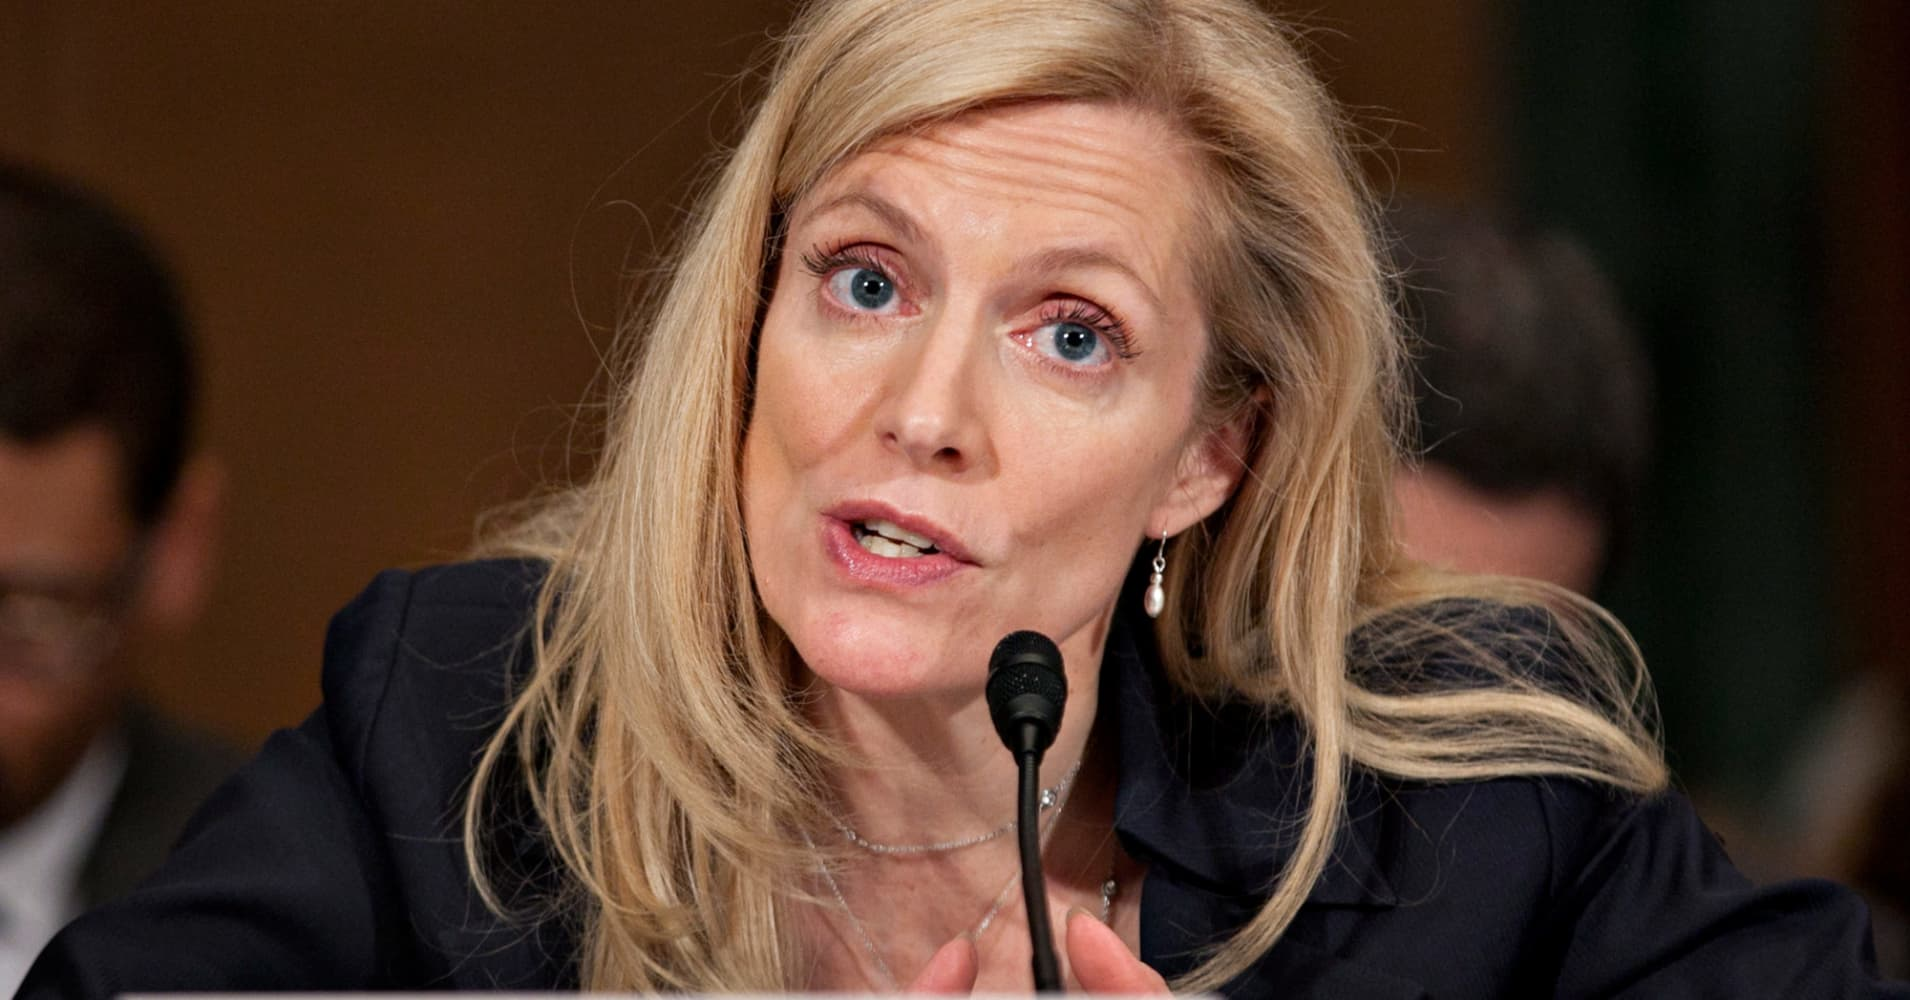 Fed governor Brainard: Rising trade tensions are a 'material uncertainty' to the economic outlook